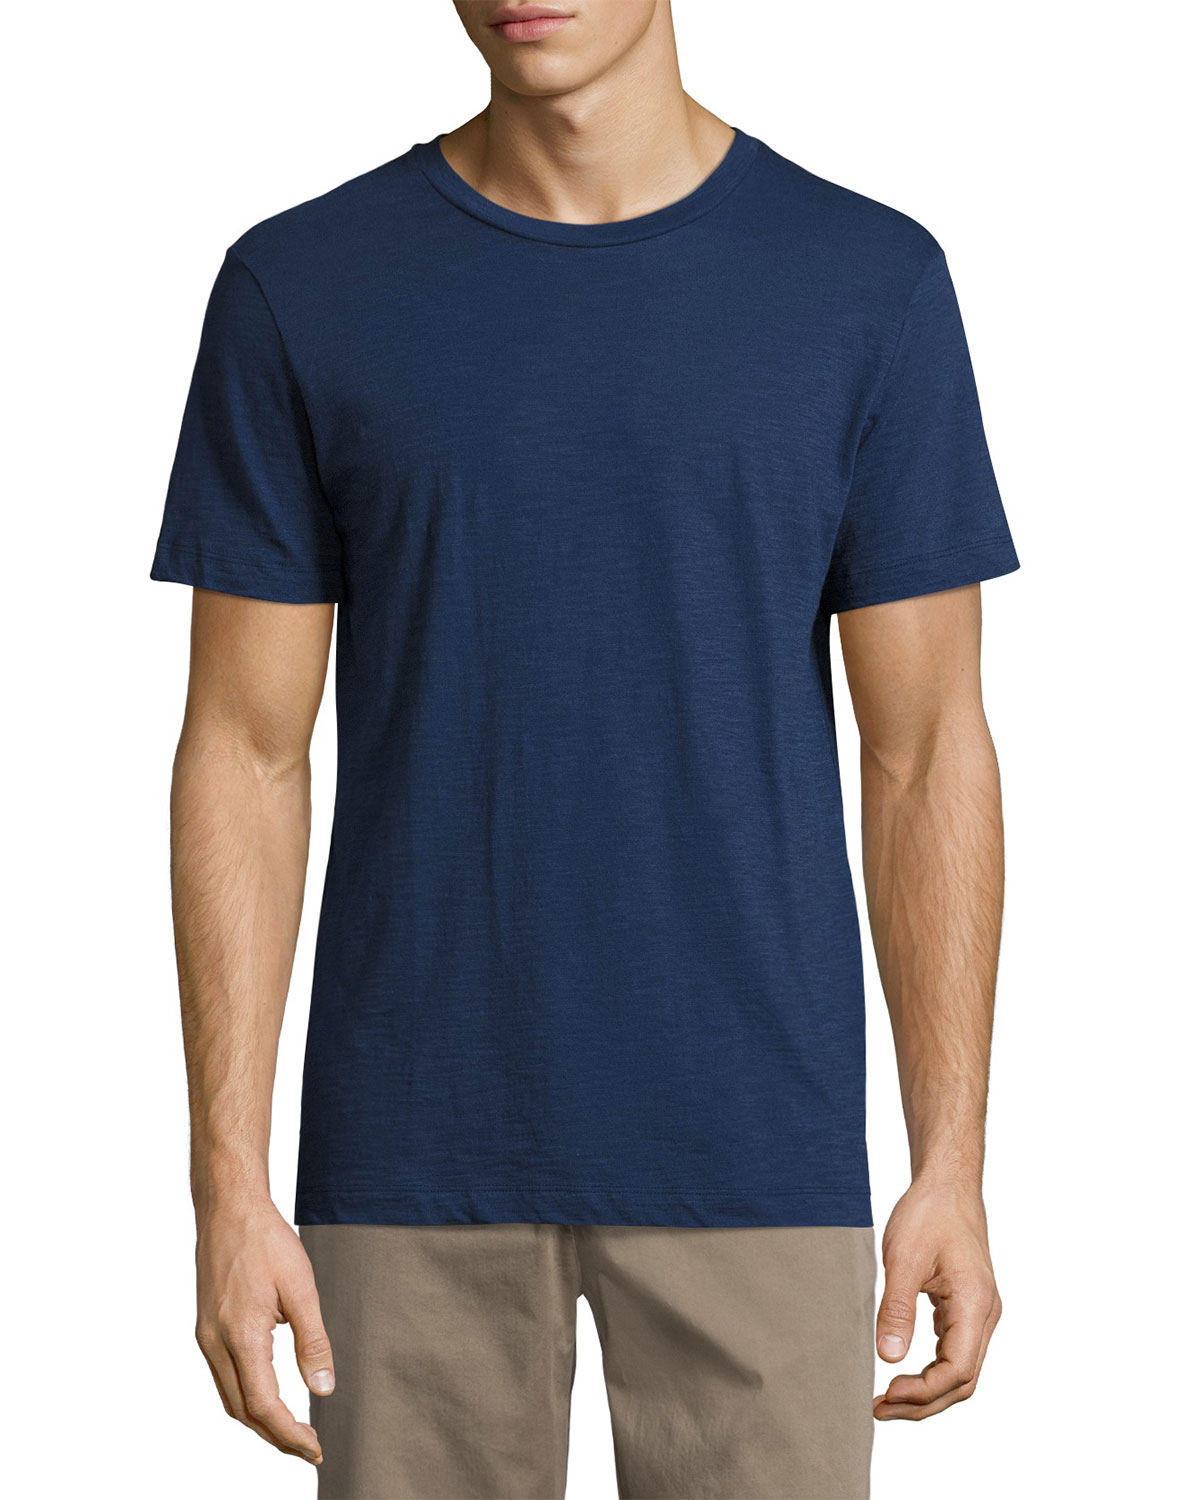 Koree Slub Crewneck T-Shirt, Bright Blue Sea